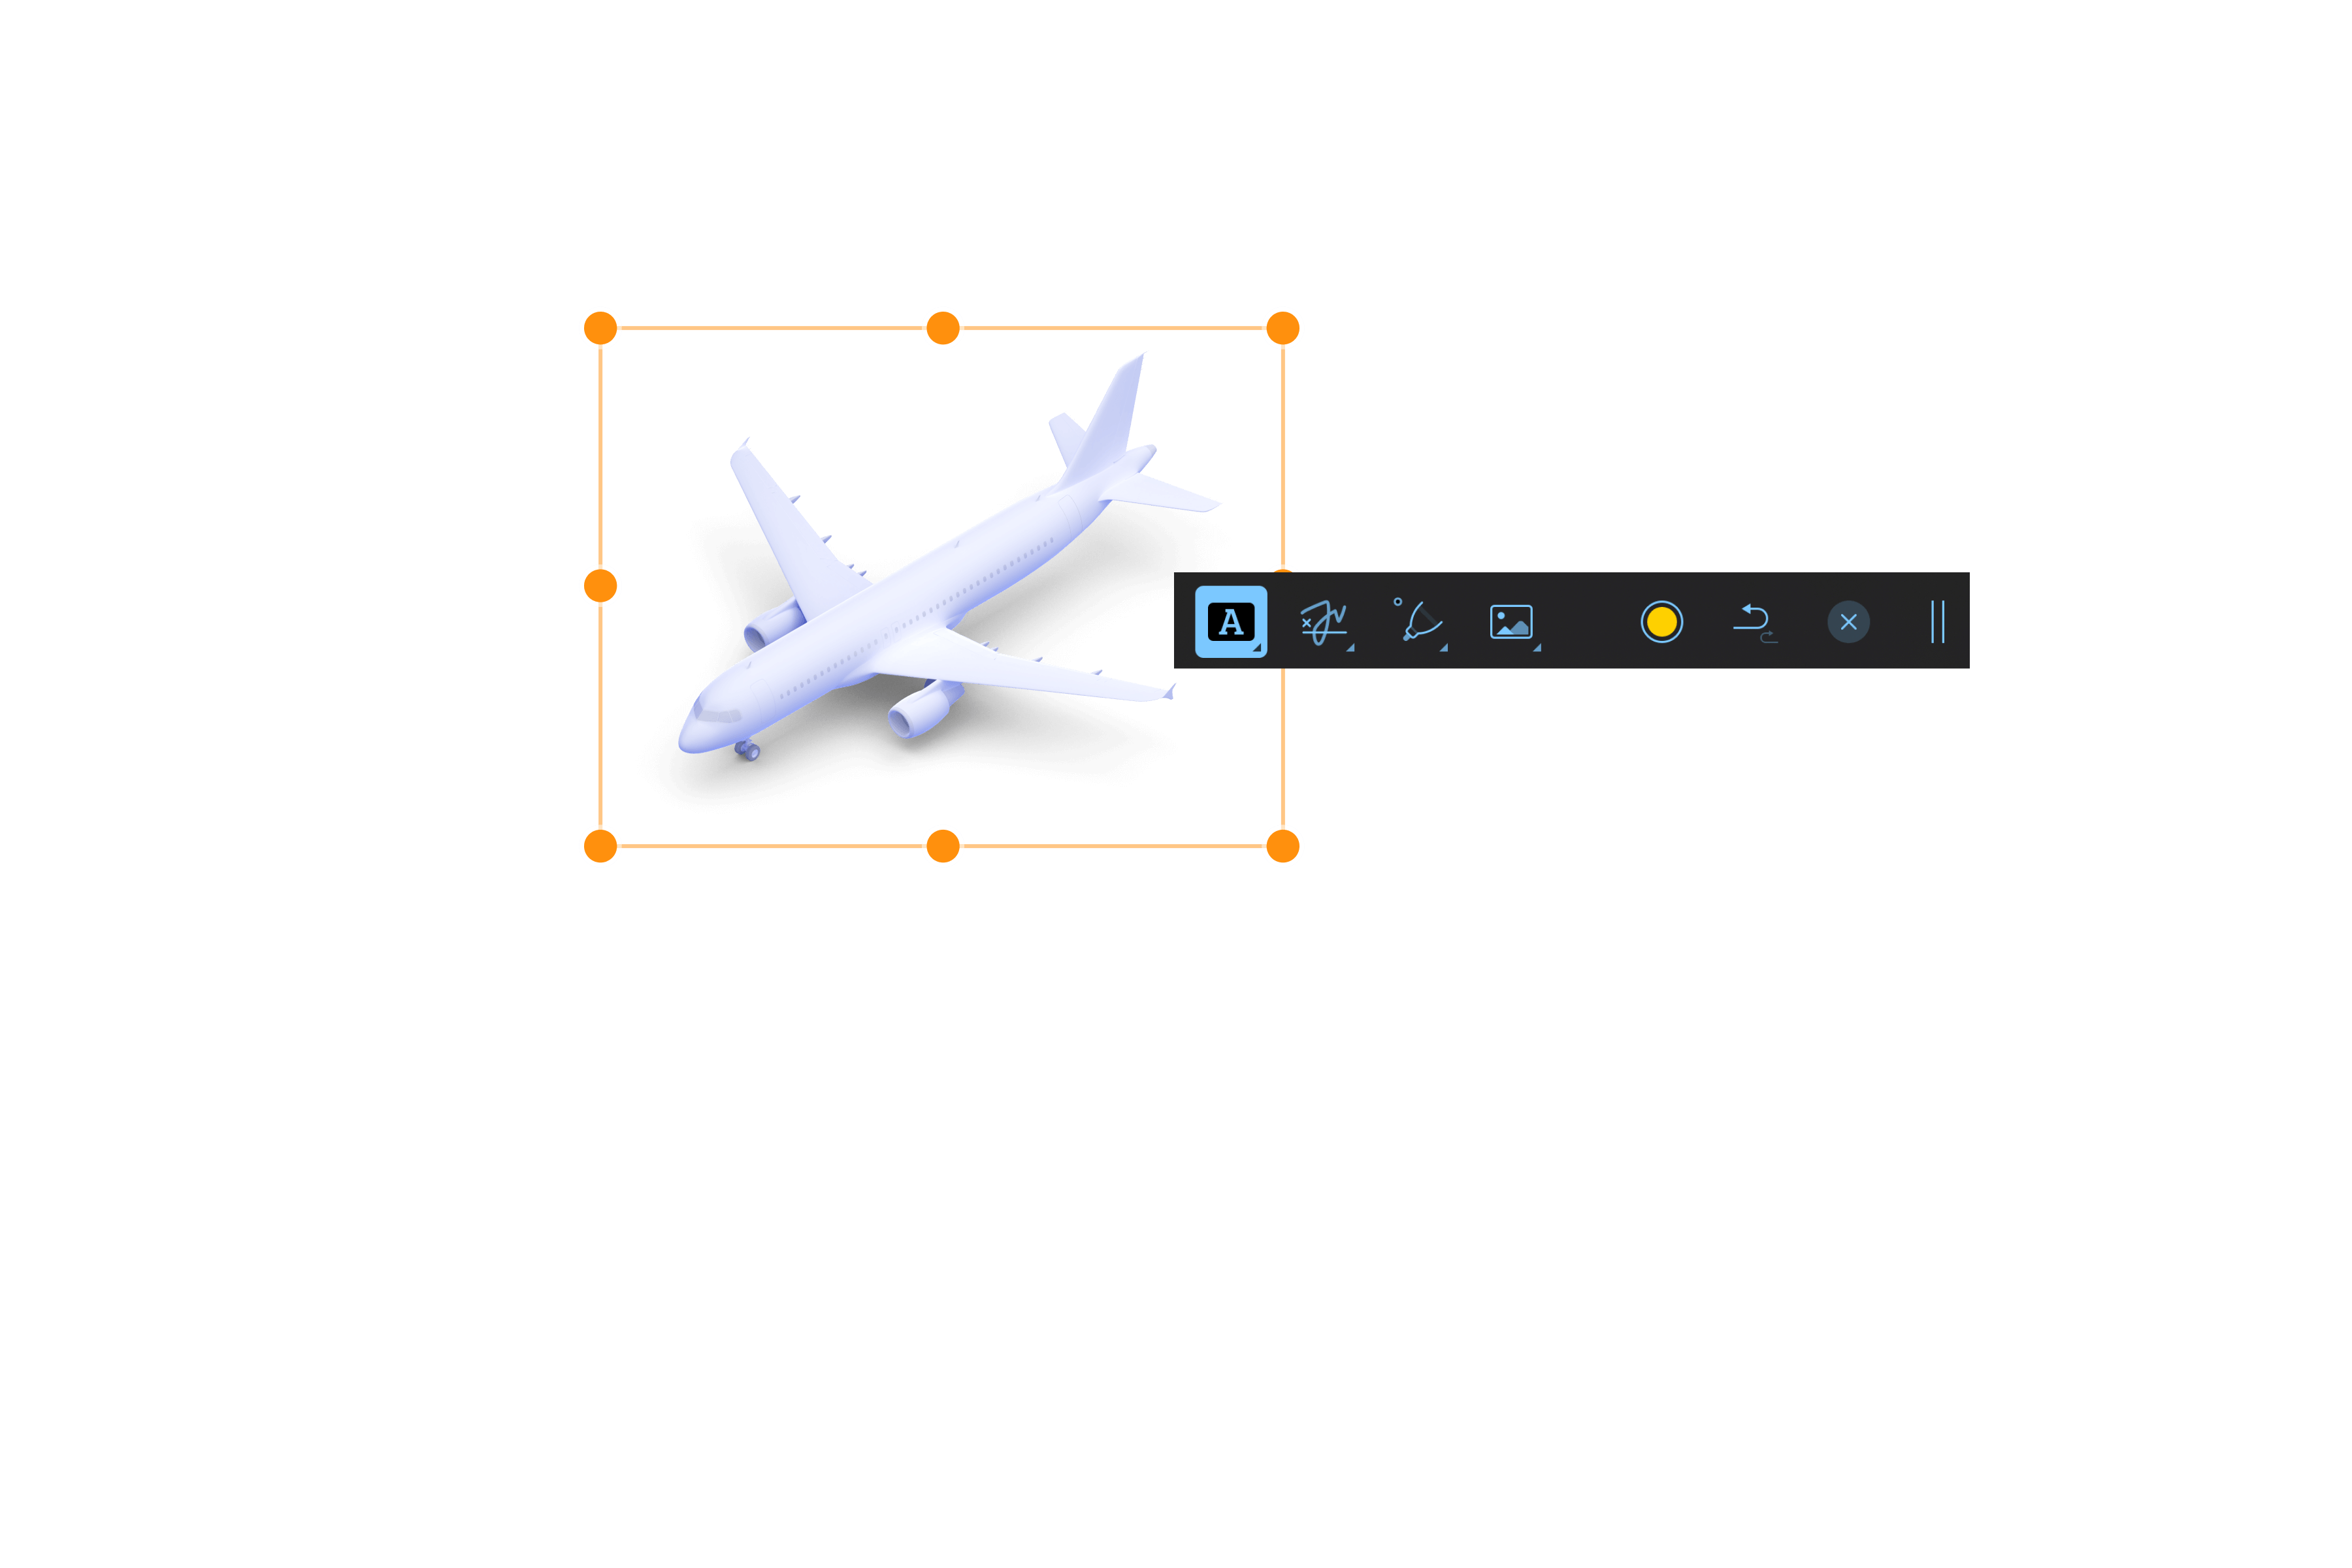 Selected image of airplane with annotation toolbar